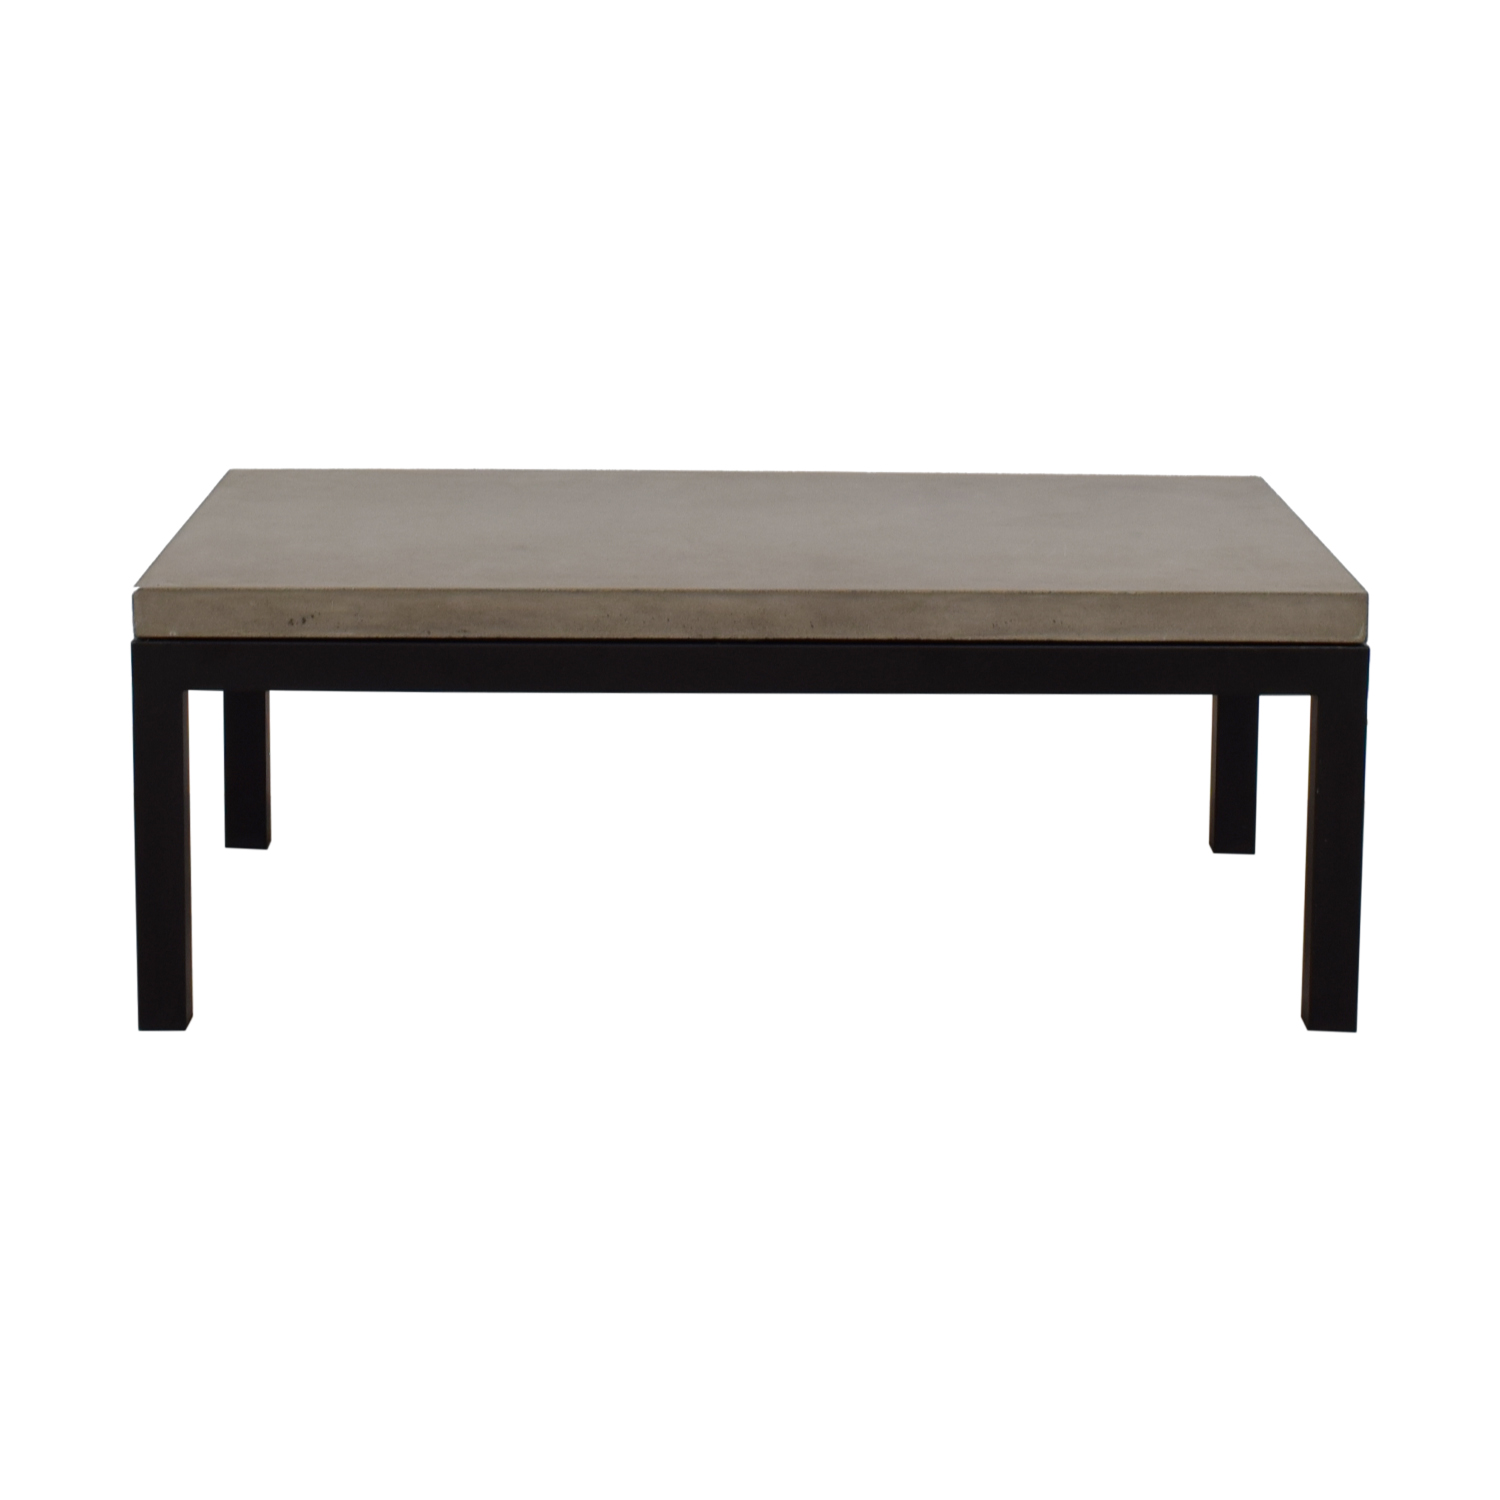 shop Crate & Barrel Crate & Barrel Parsons Concrete Top Dark Steel Base Small Rectangular Coffee Table online